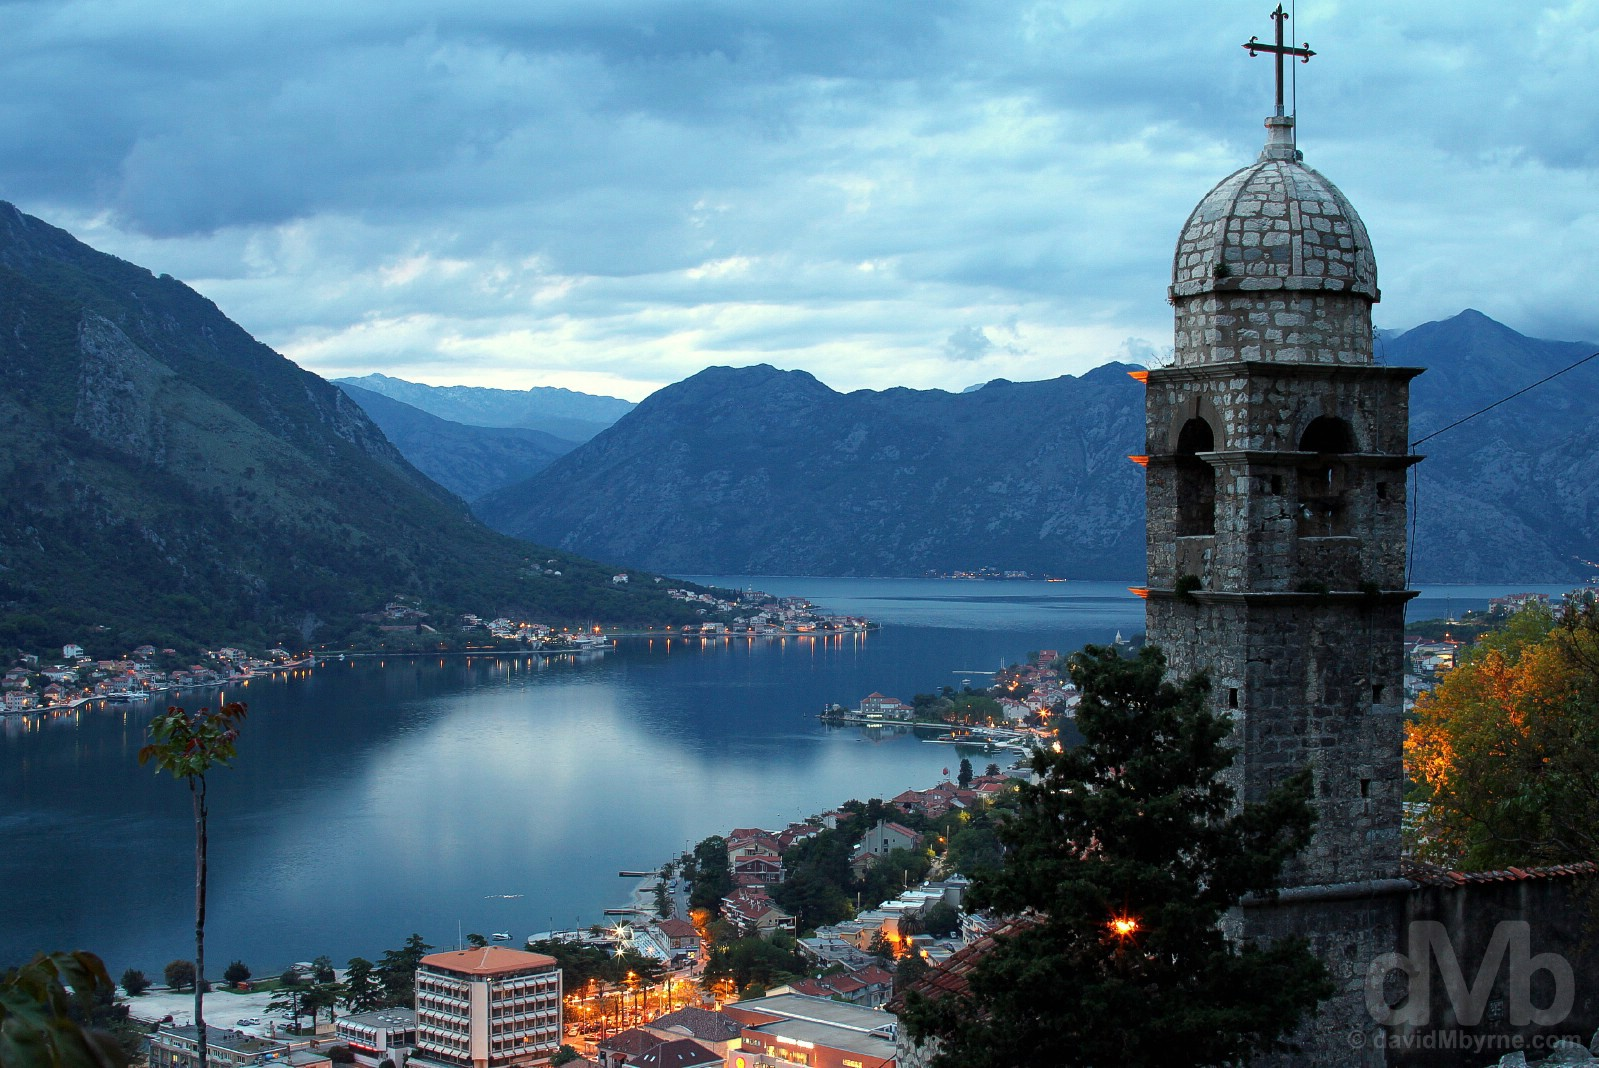 Kotor & the spire of the 1518 Church of Our Leady of Remedy at dusk on the fortress walls overlooking Kotor Bay, Montenegro. April 19, 2017.